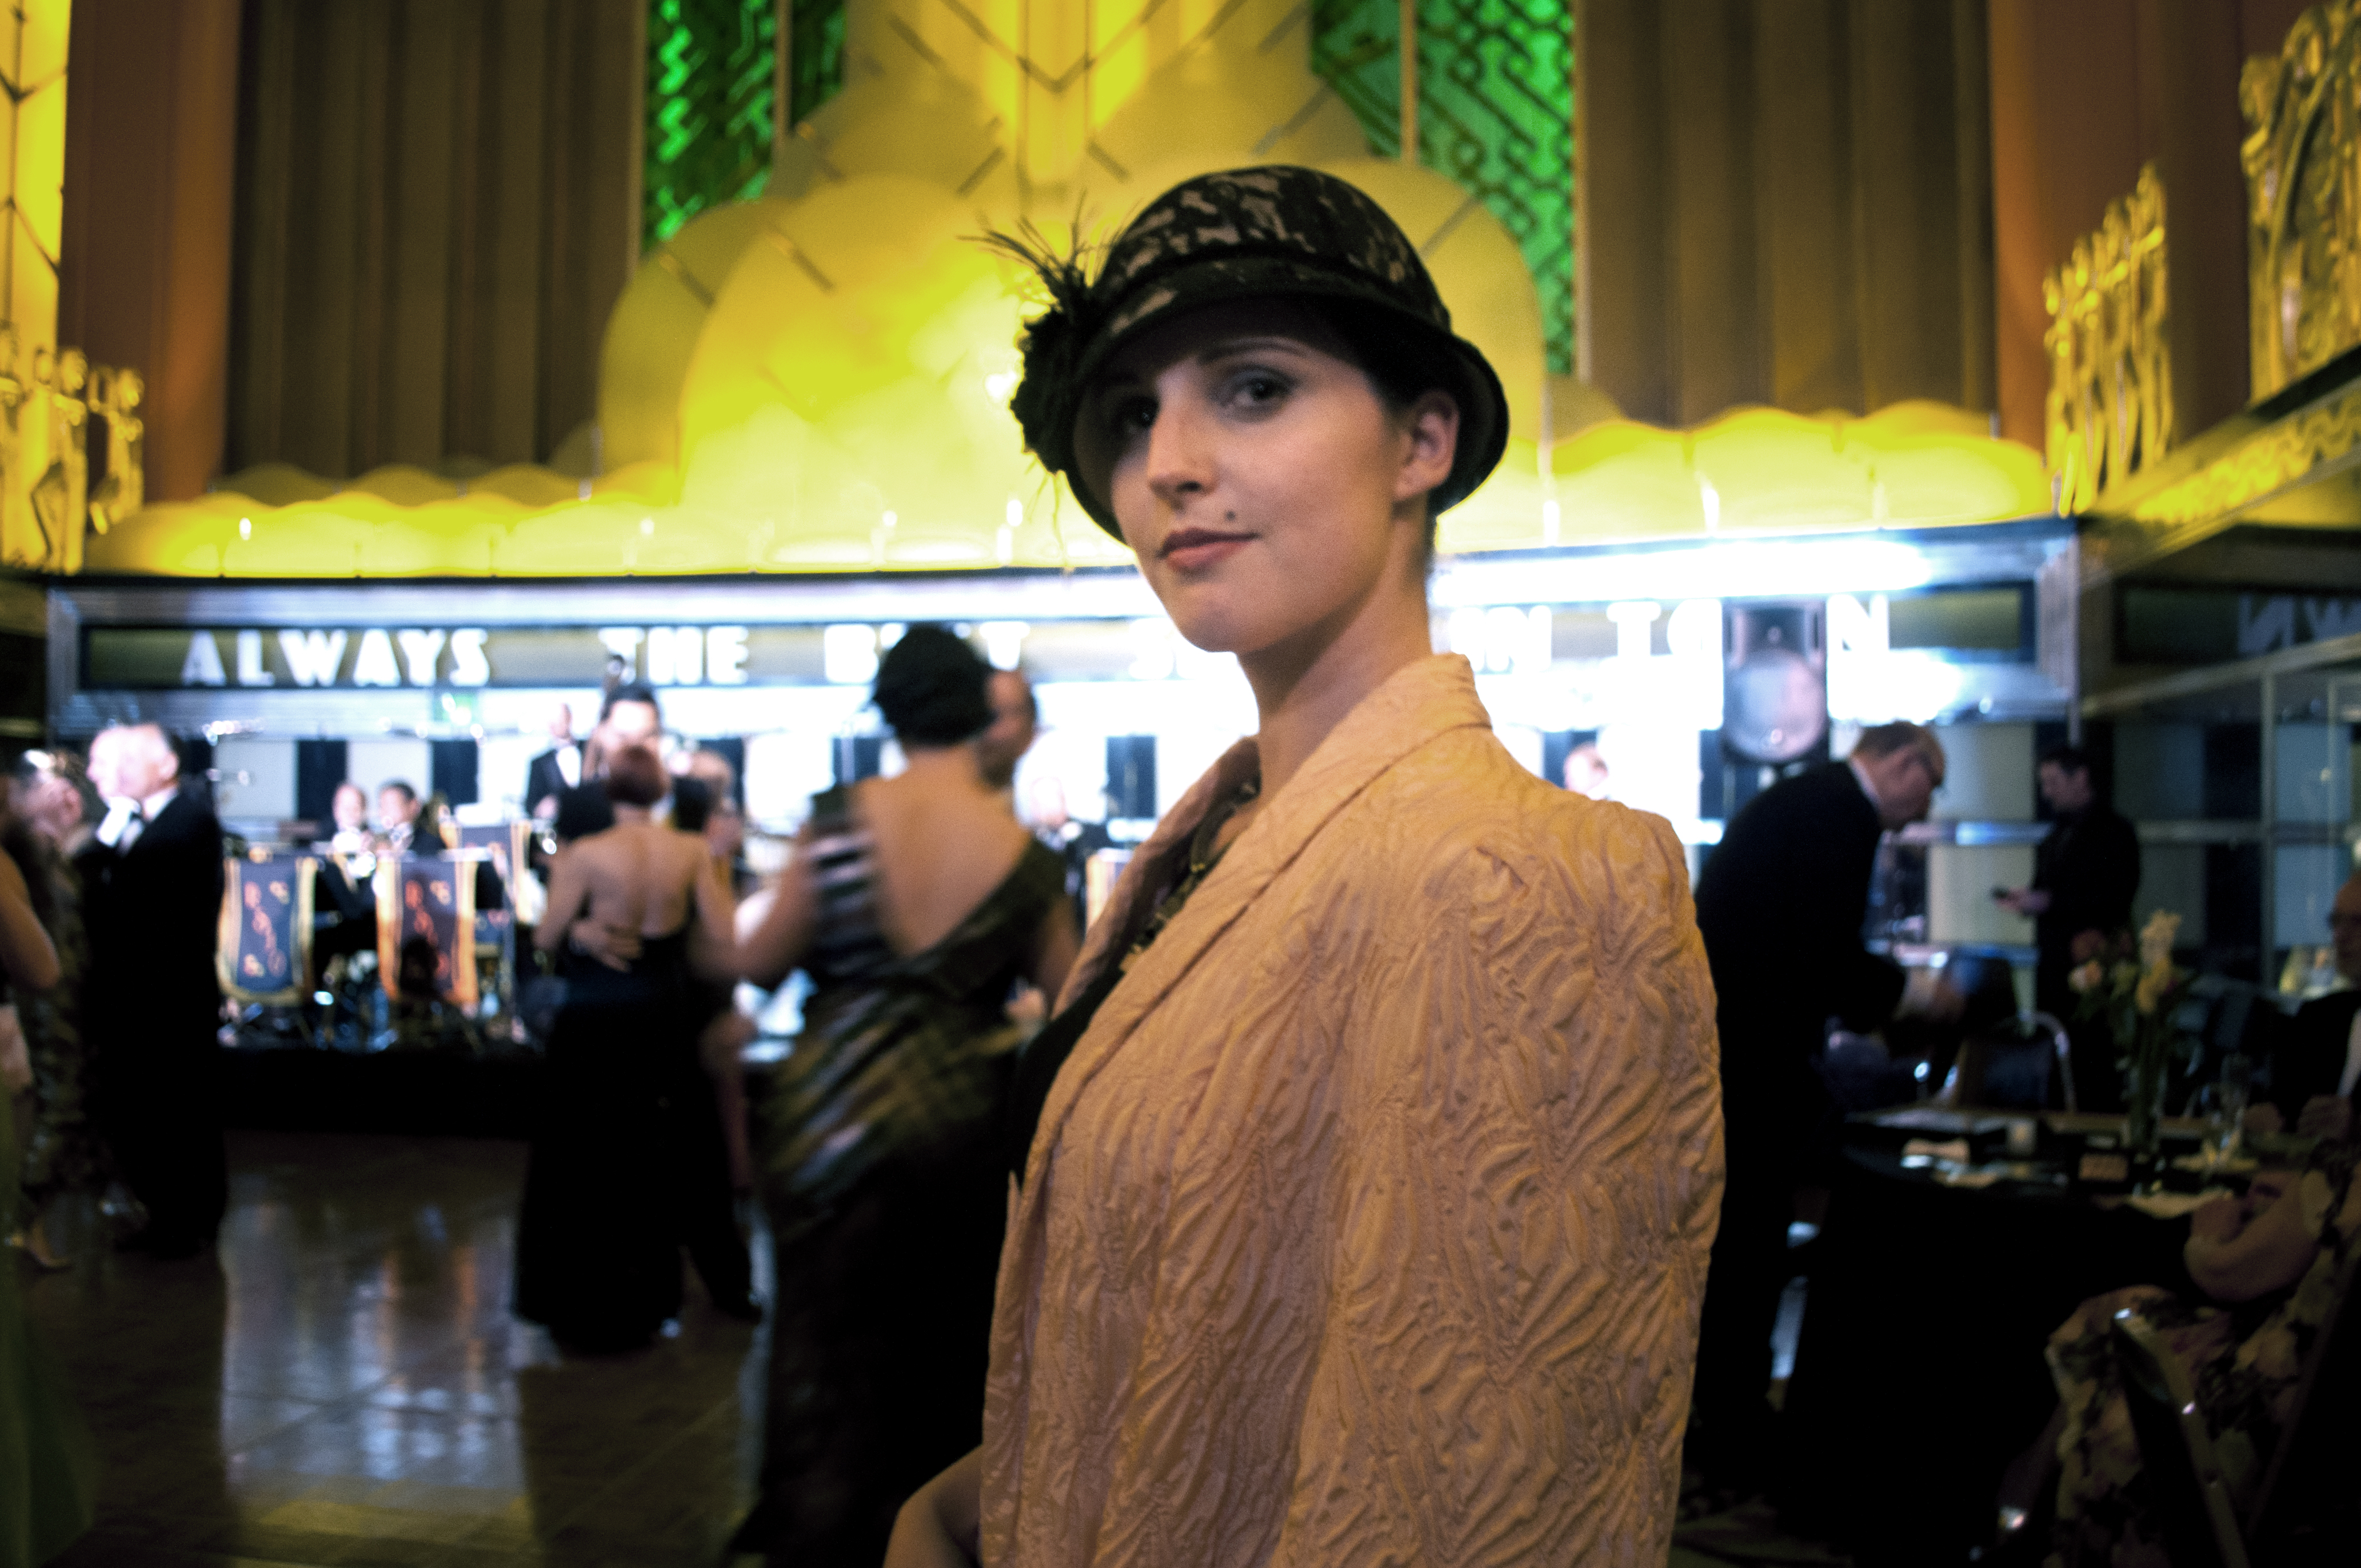 Woman dressed in the style of the 1920s. (Lauren Benichou/KQED)Woman dressed in the style of the 1920s. (Lauren Benichou/KQED)